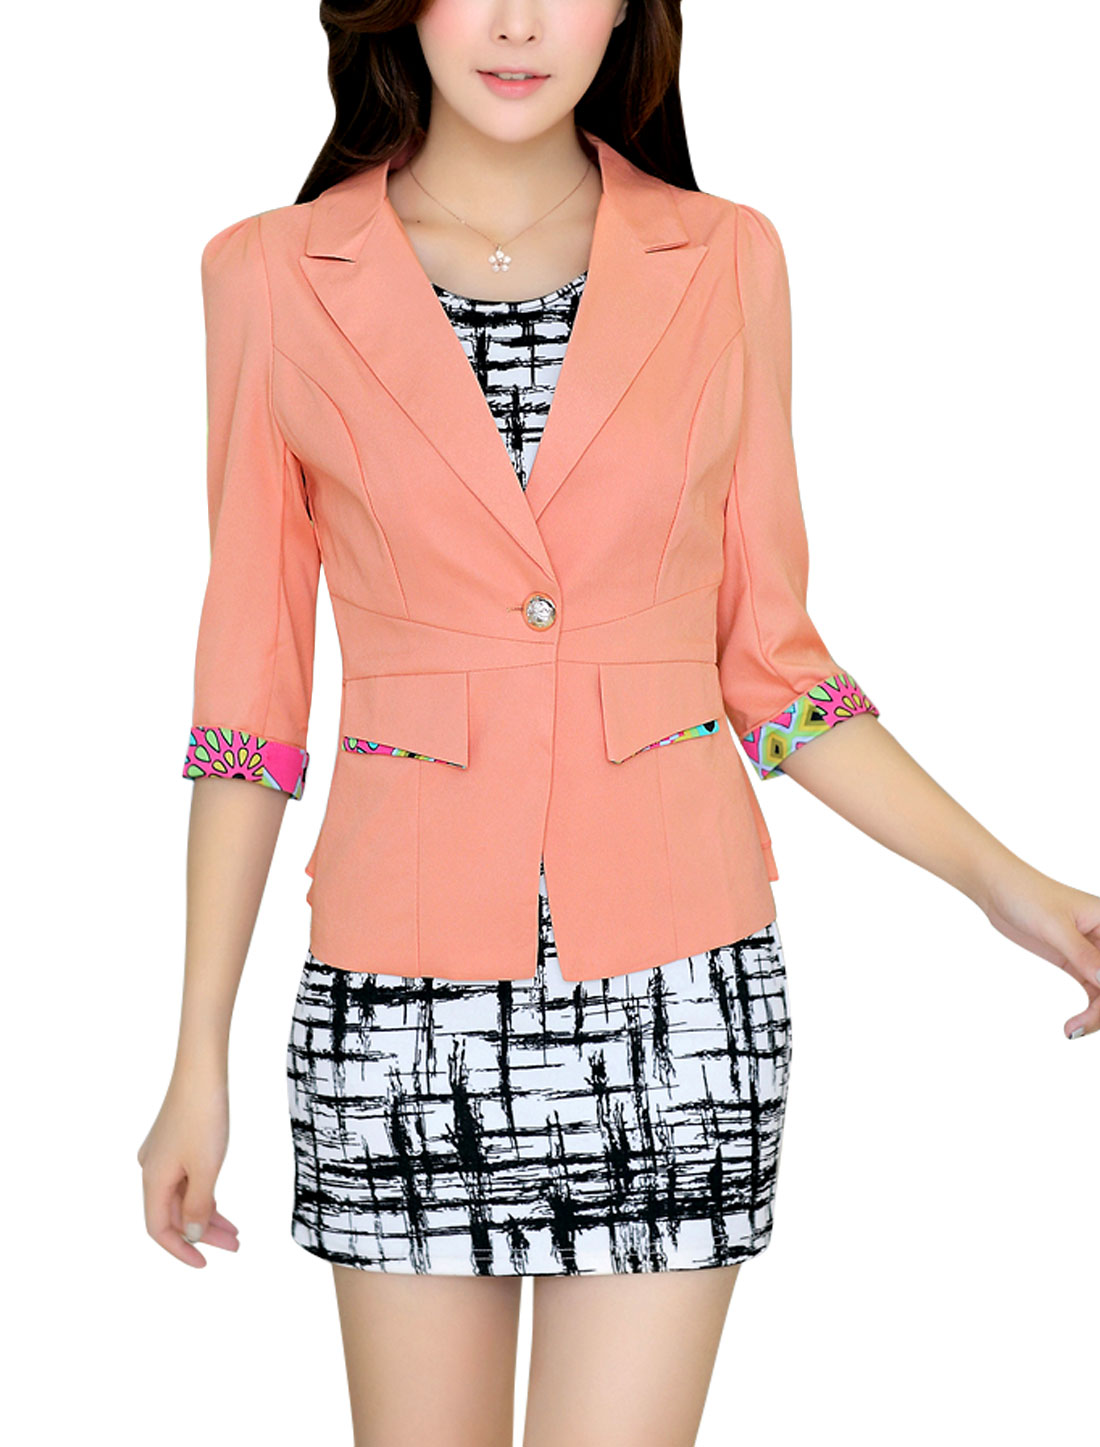 Roll-up Cuffs Button Closure Salmon Blazer Jacket for Women L